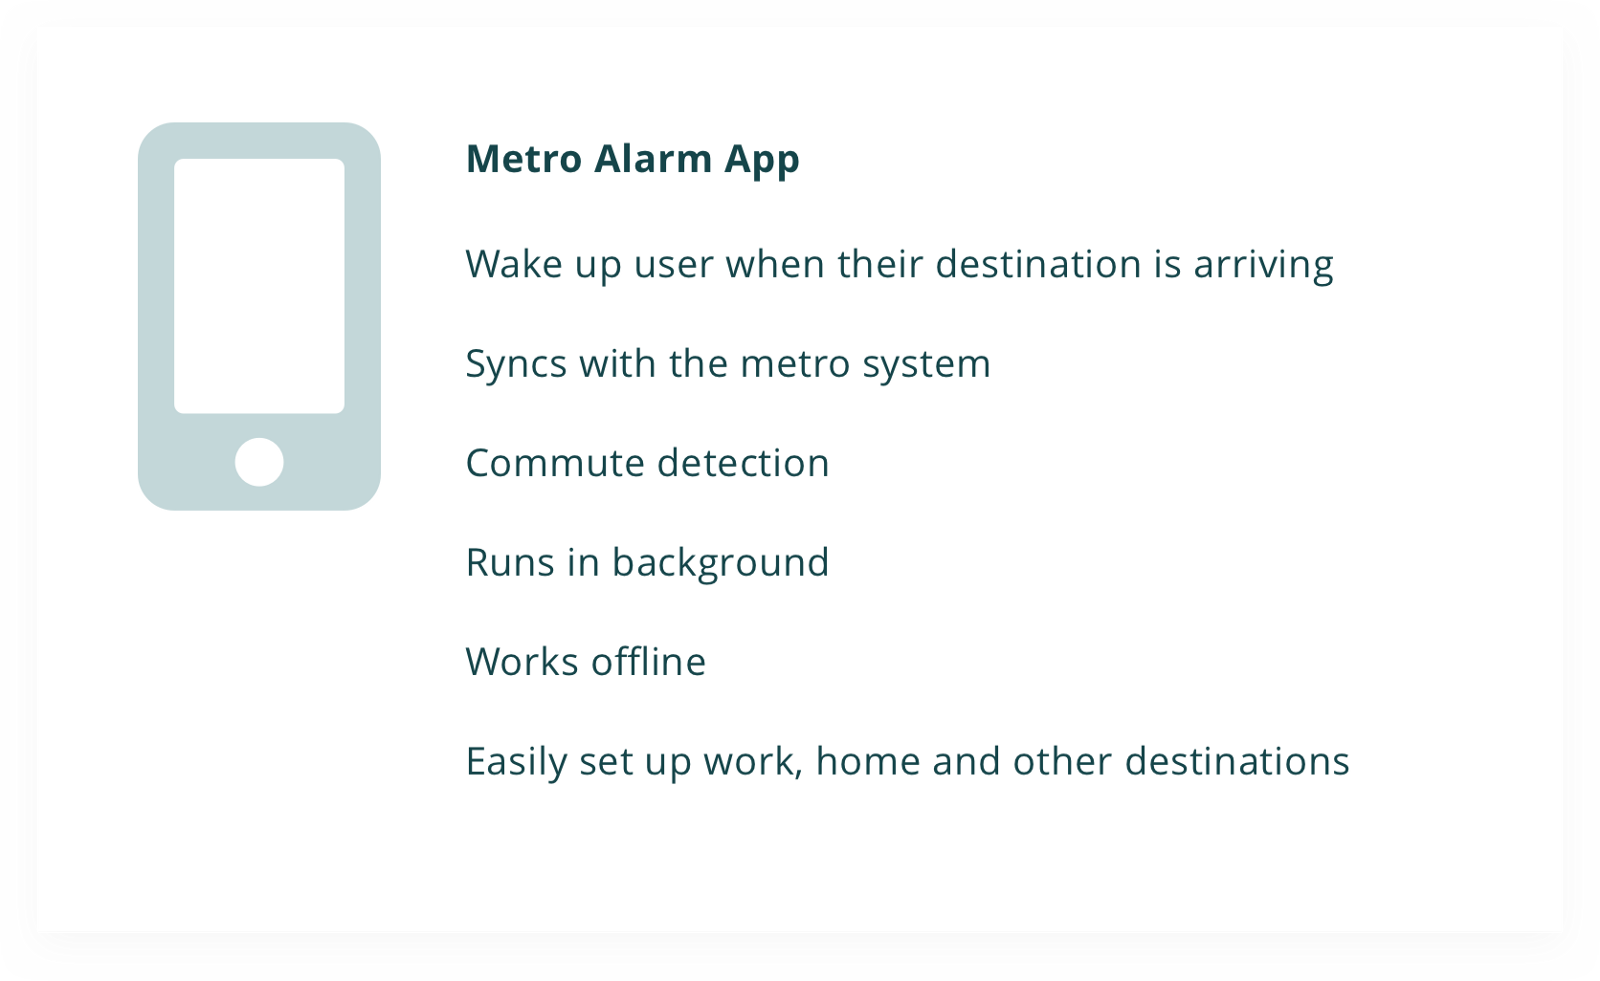 metro alarm \u2014 a ux case study \u2013 ux collectivecoming up with success metrics